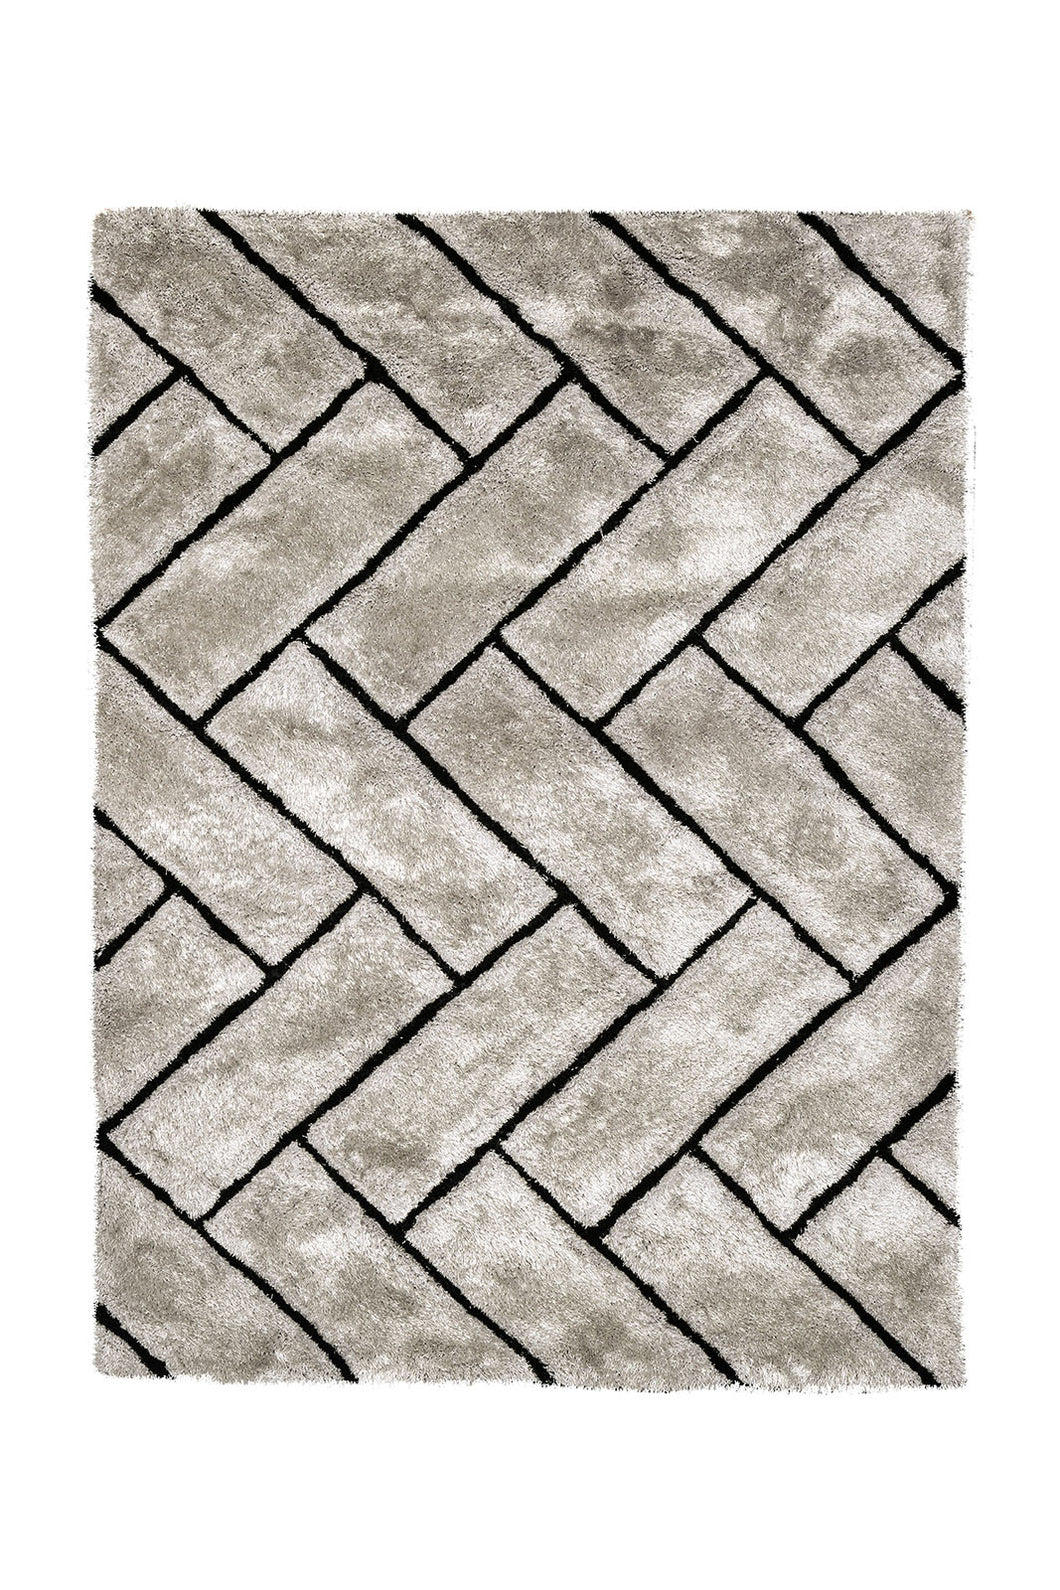 Fermont Gray 5' X 8' Area Rug